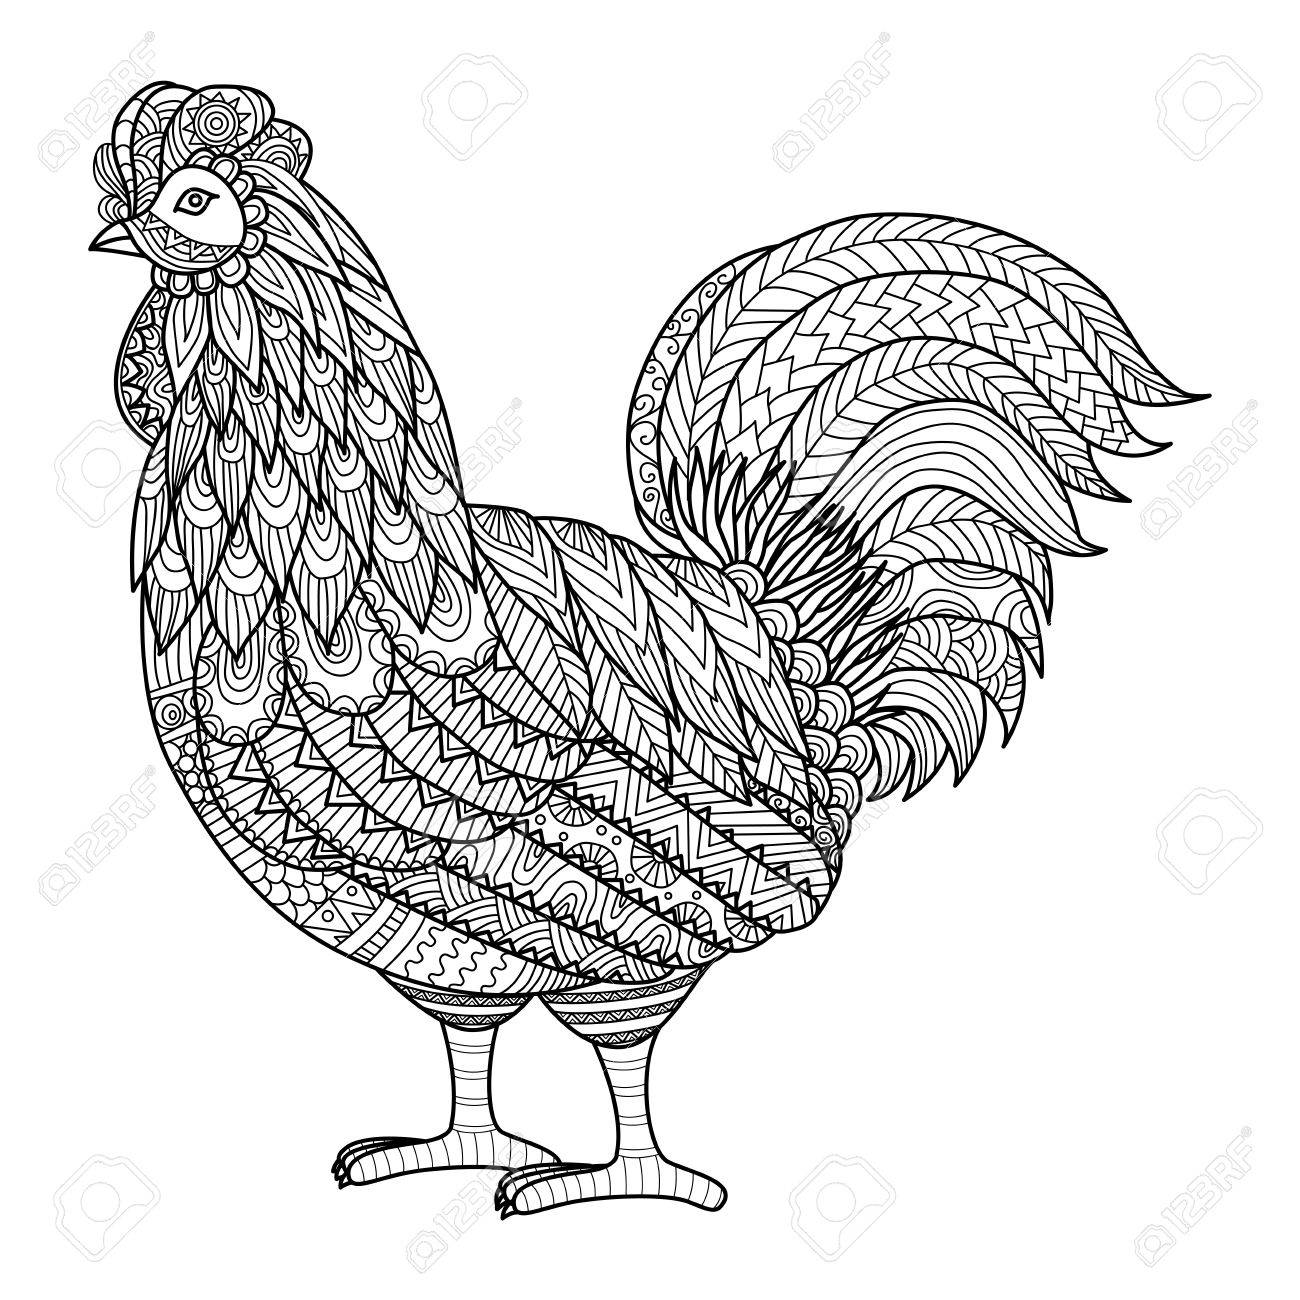 zentangle chicken for coloring book royalty free cliparts vectors